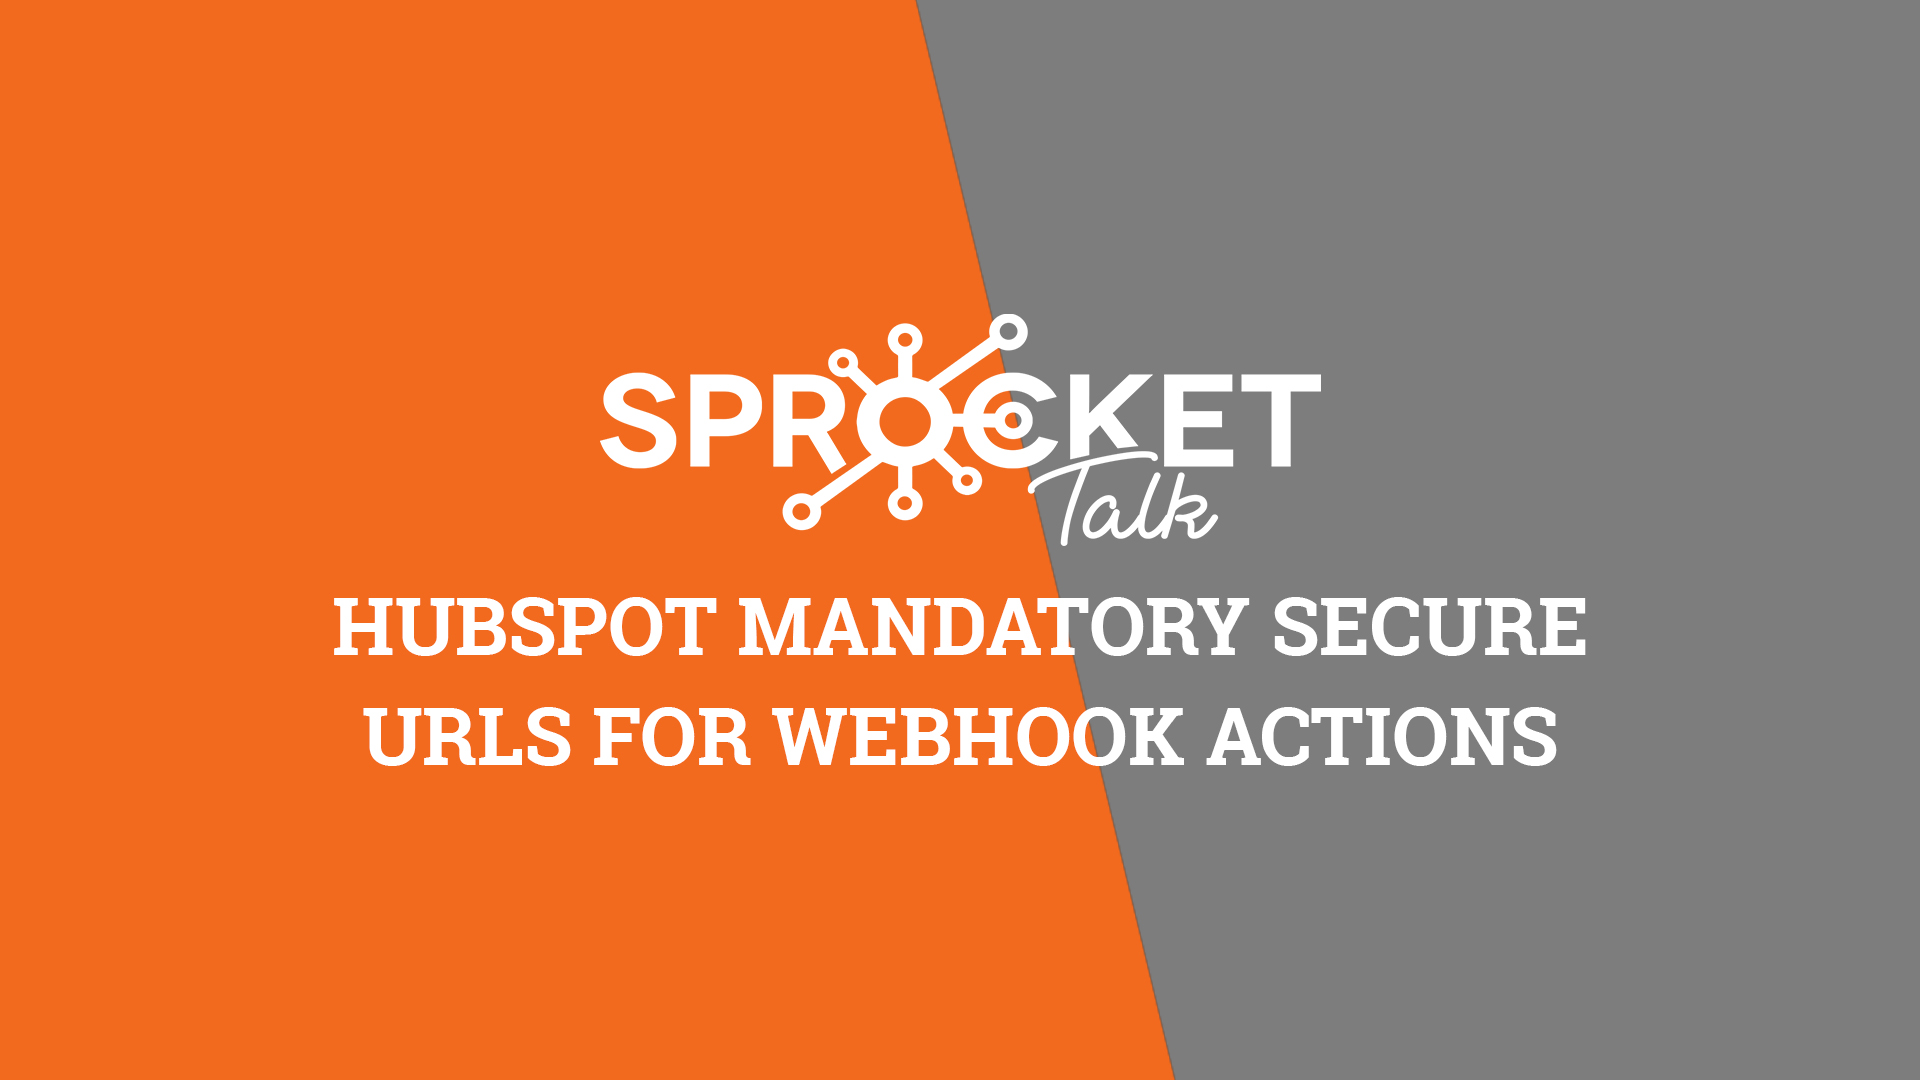 HubSpot Mandatory Secure URLs for Webhook Actions